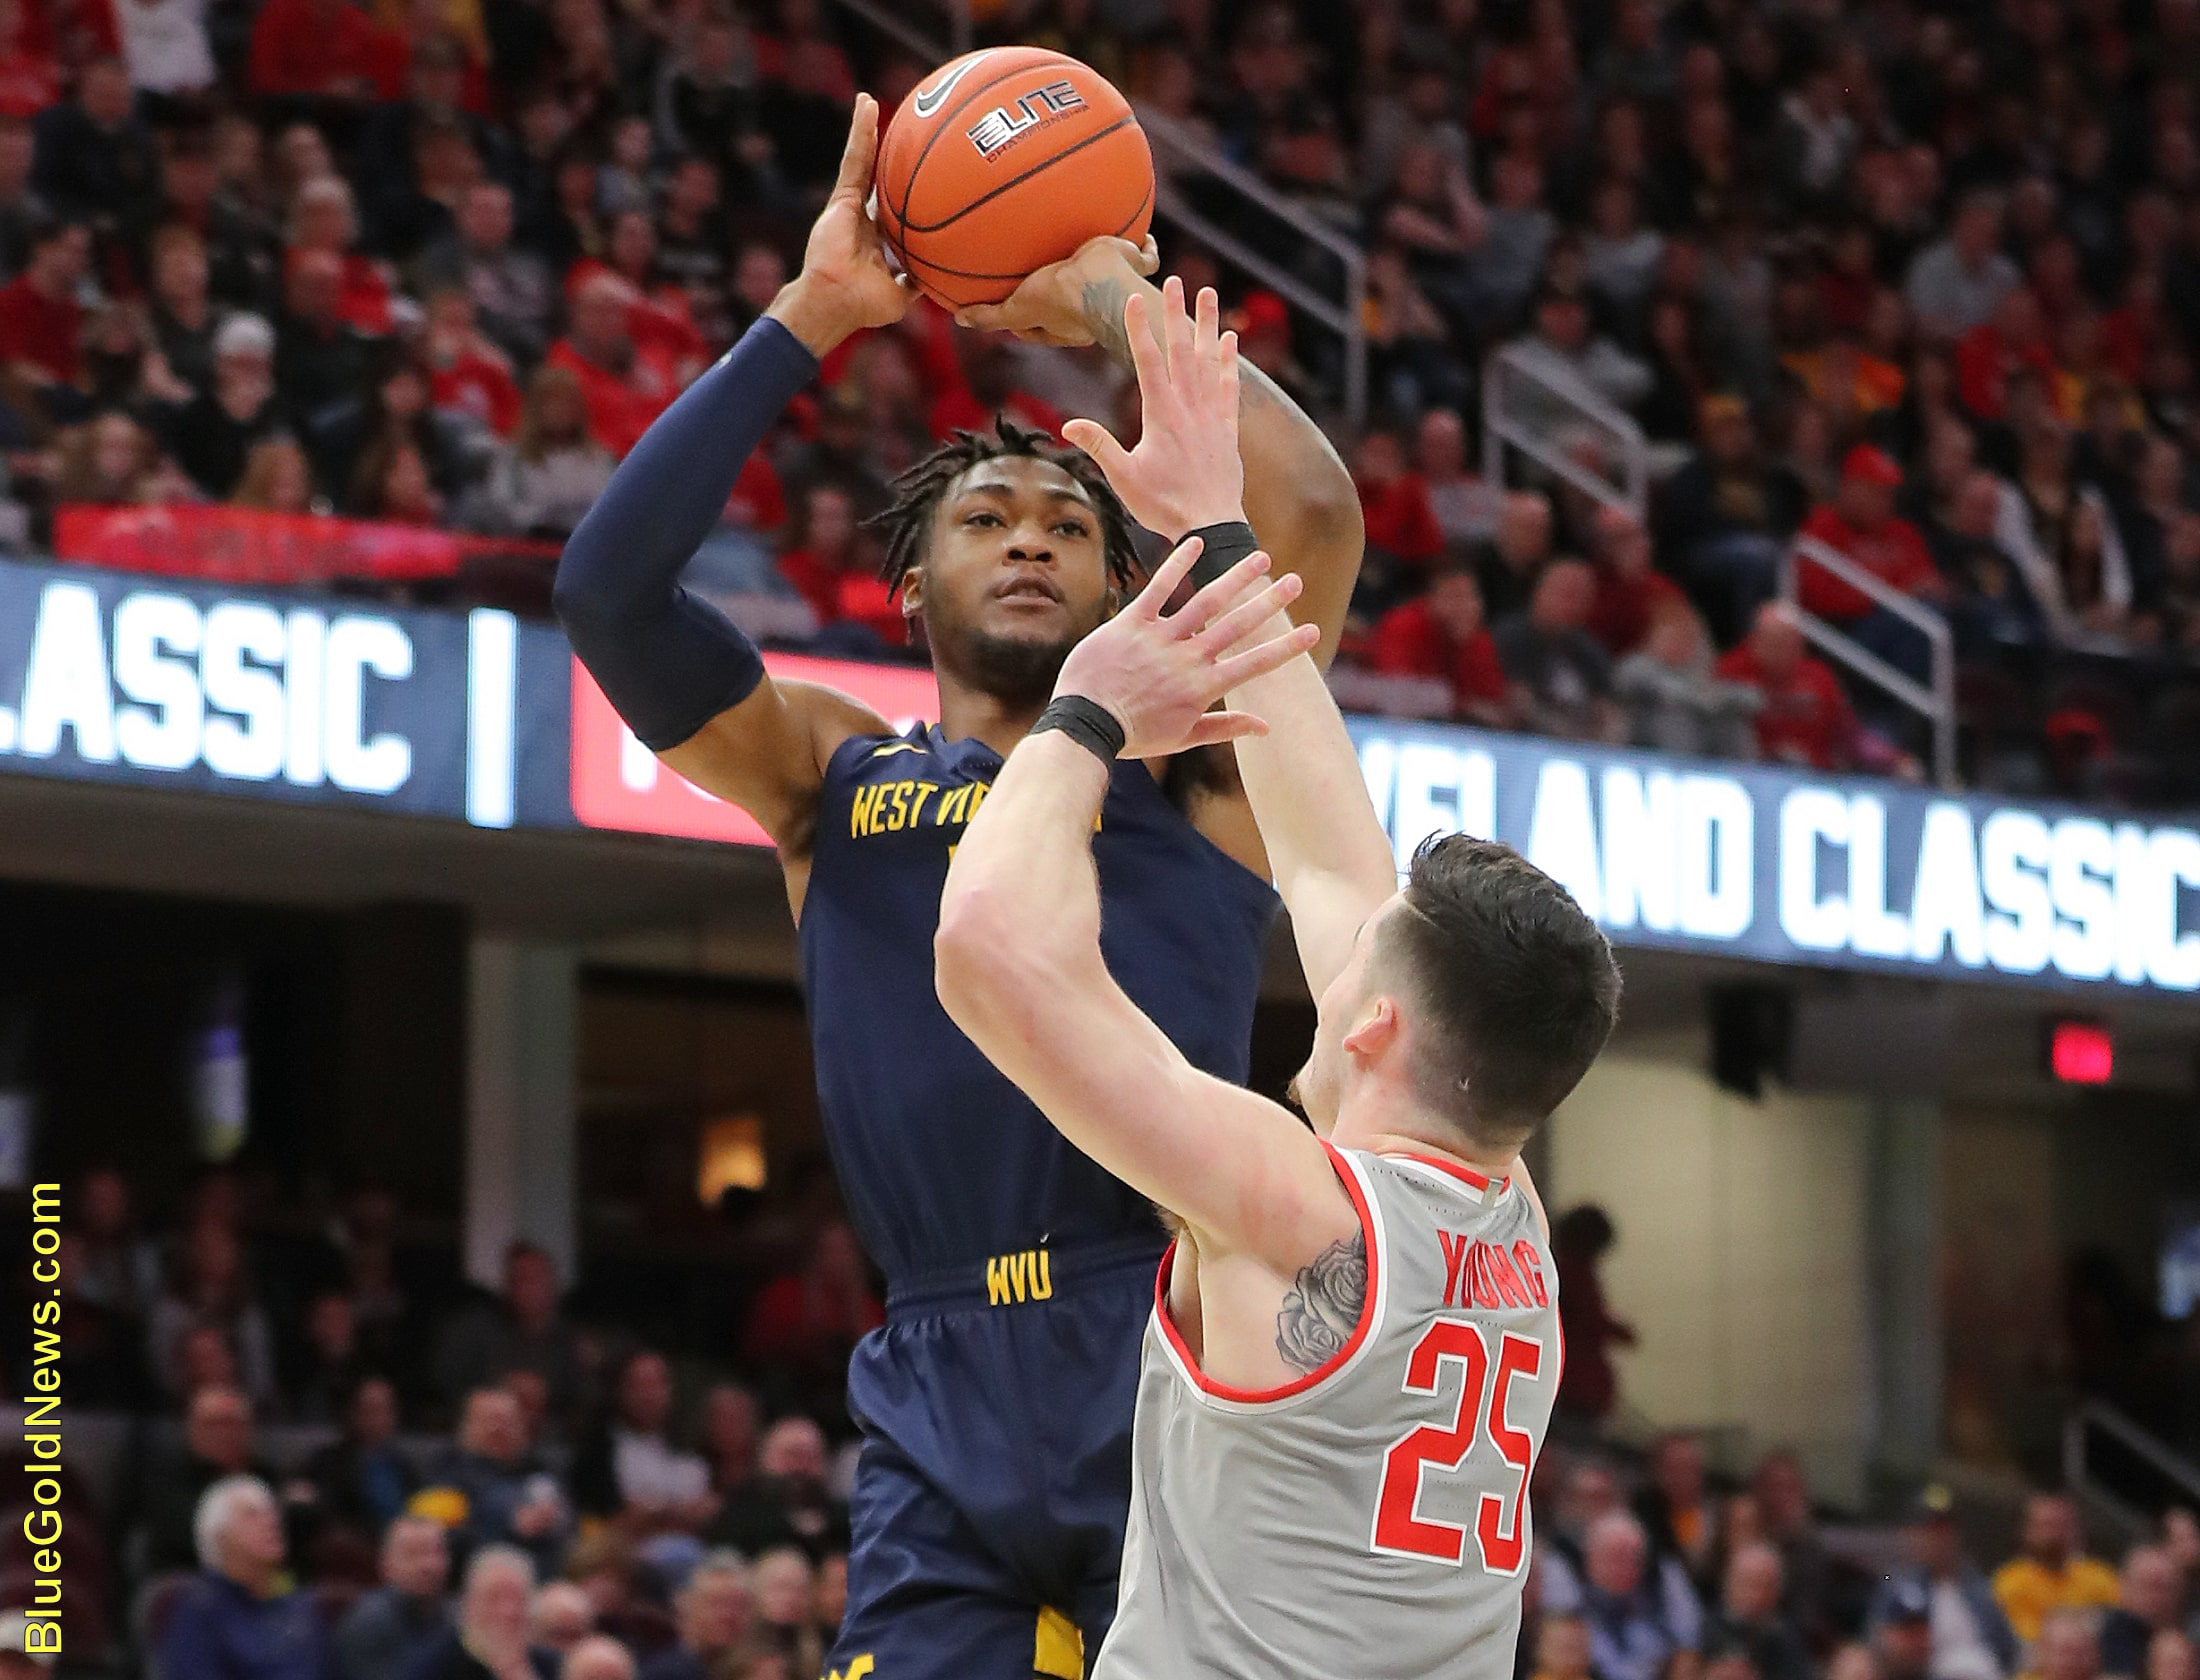 West Virginia forward Derek Culver drains a jumper over Ohio State's Kyle Young (25)